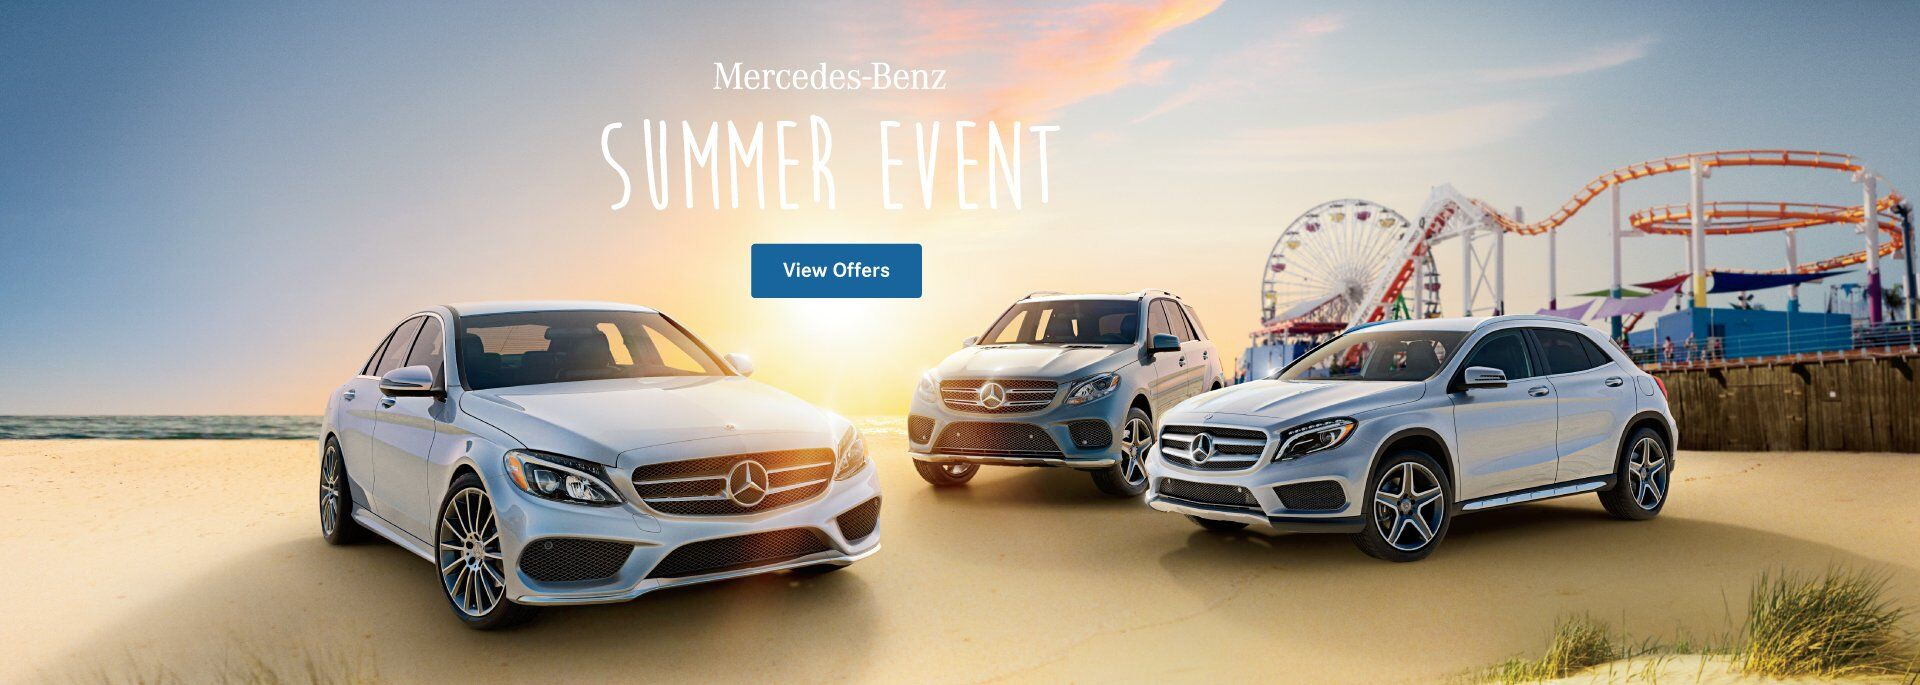 Mercedes-Benz Spring Event